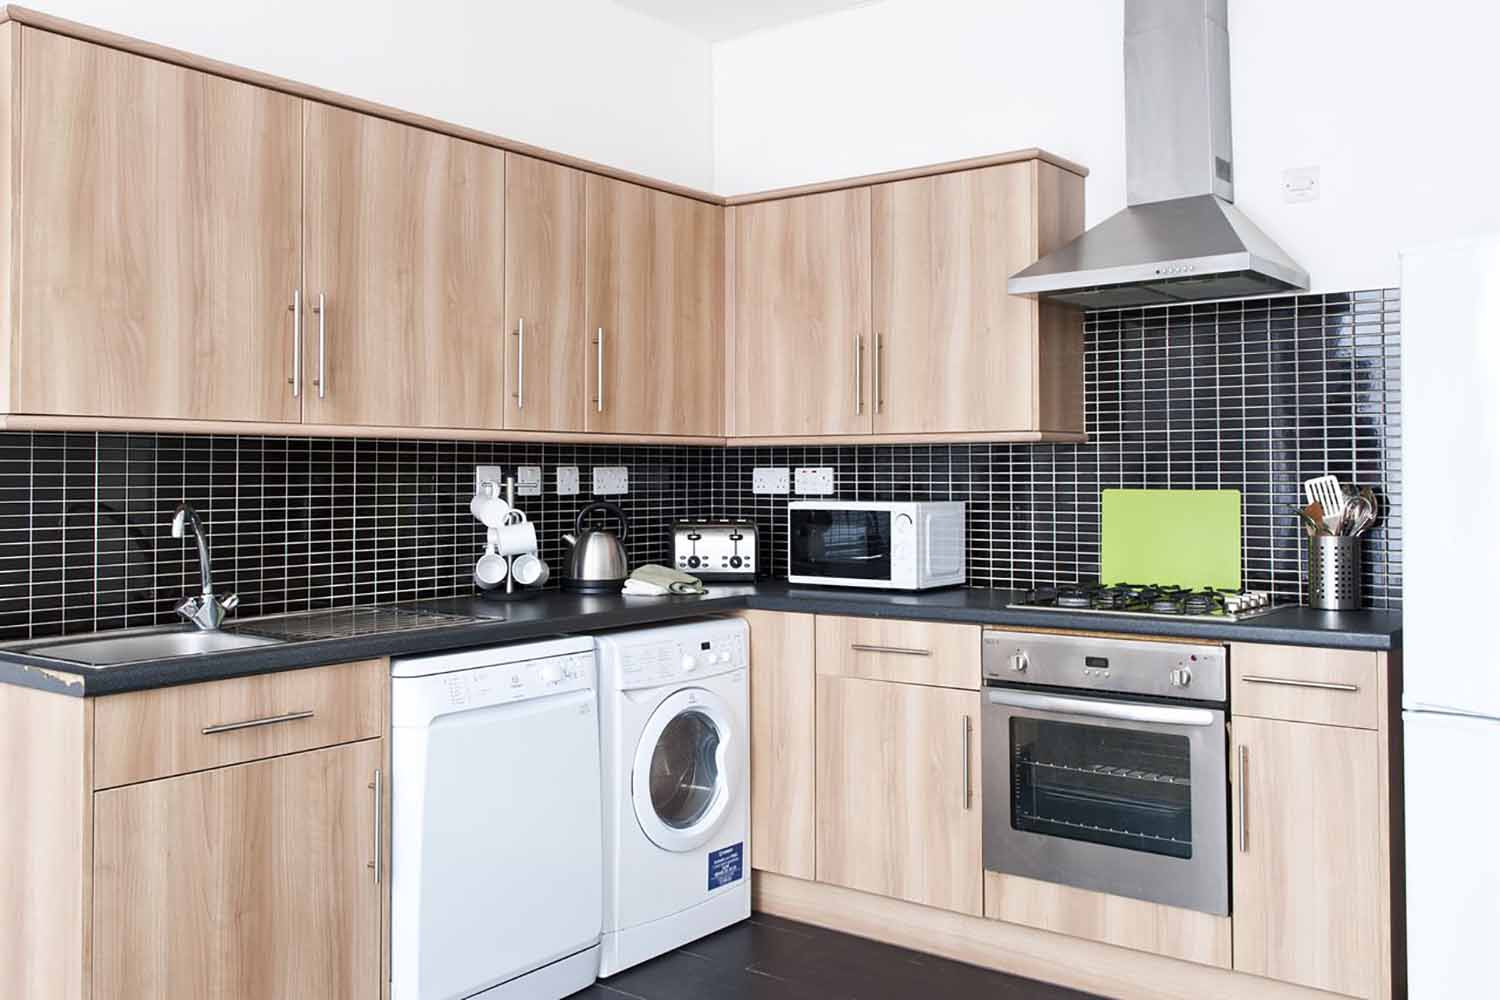 London Eltham_Acc_Shared apartments_kitchen_02